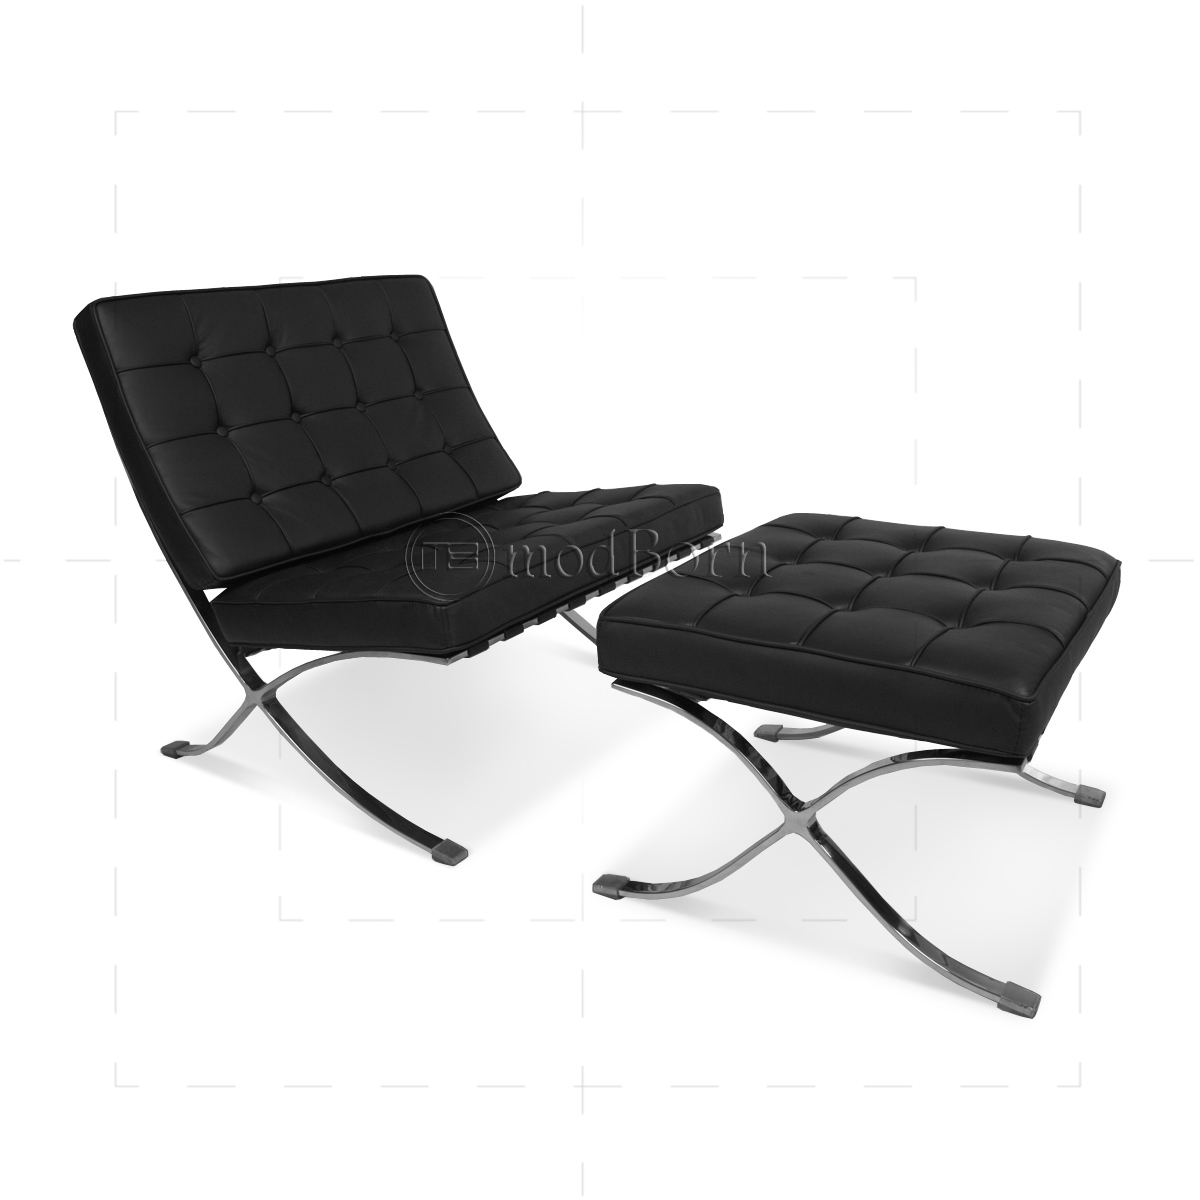 ludwig mies van der rohe barcelona style chair black leather replica. Black Bedroom Furniture Sets. Home Design Ideas